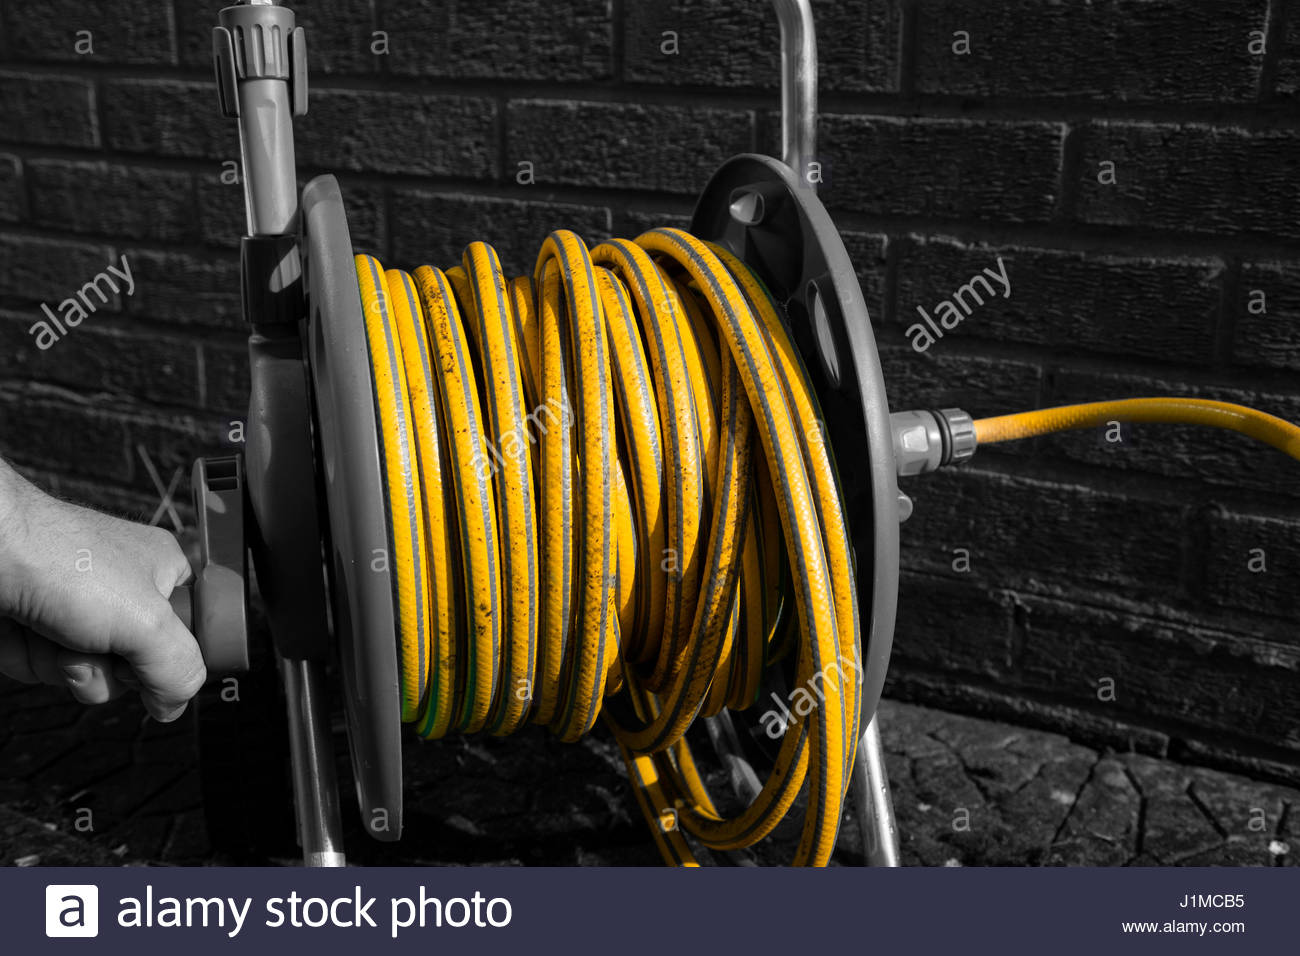 Selective colour image of a man winding a hose pipe reel - Stock Image & Garden Hose Reel Stock Photos u0026 Garden Hose Reel Stock Images - Alamy